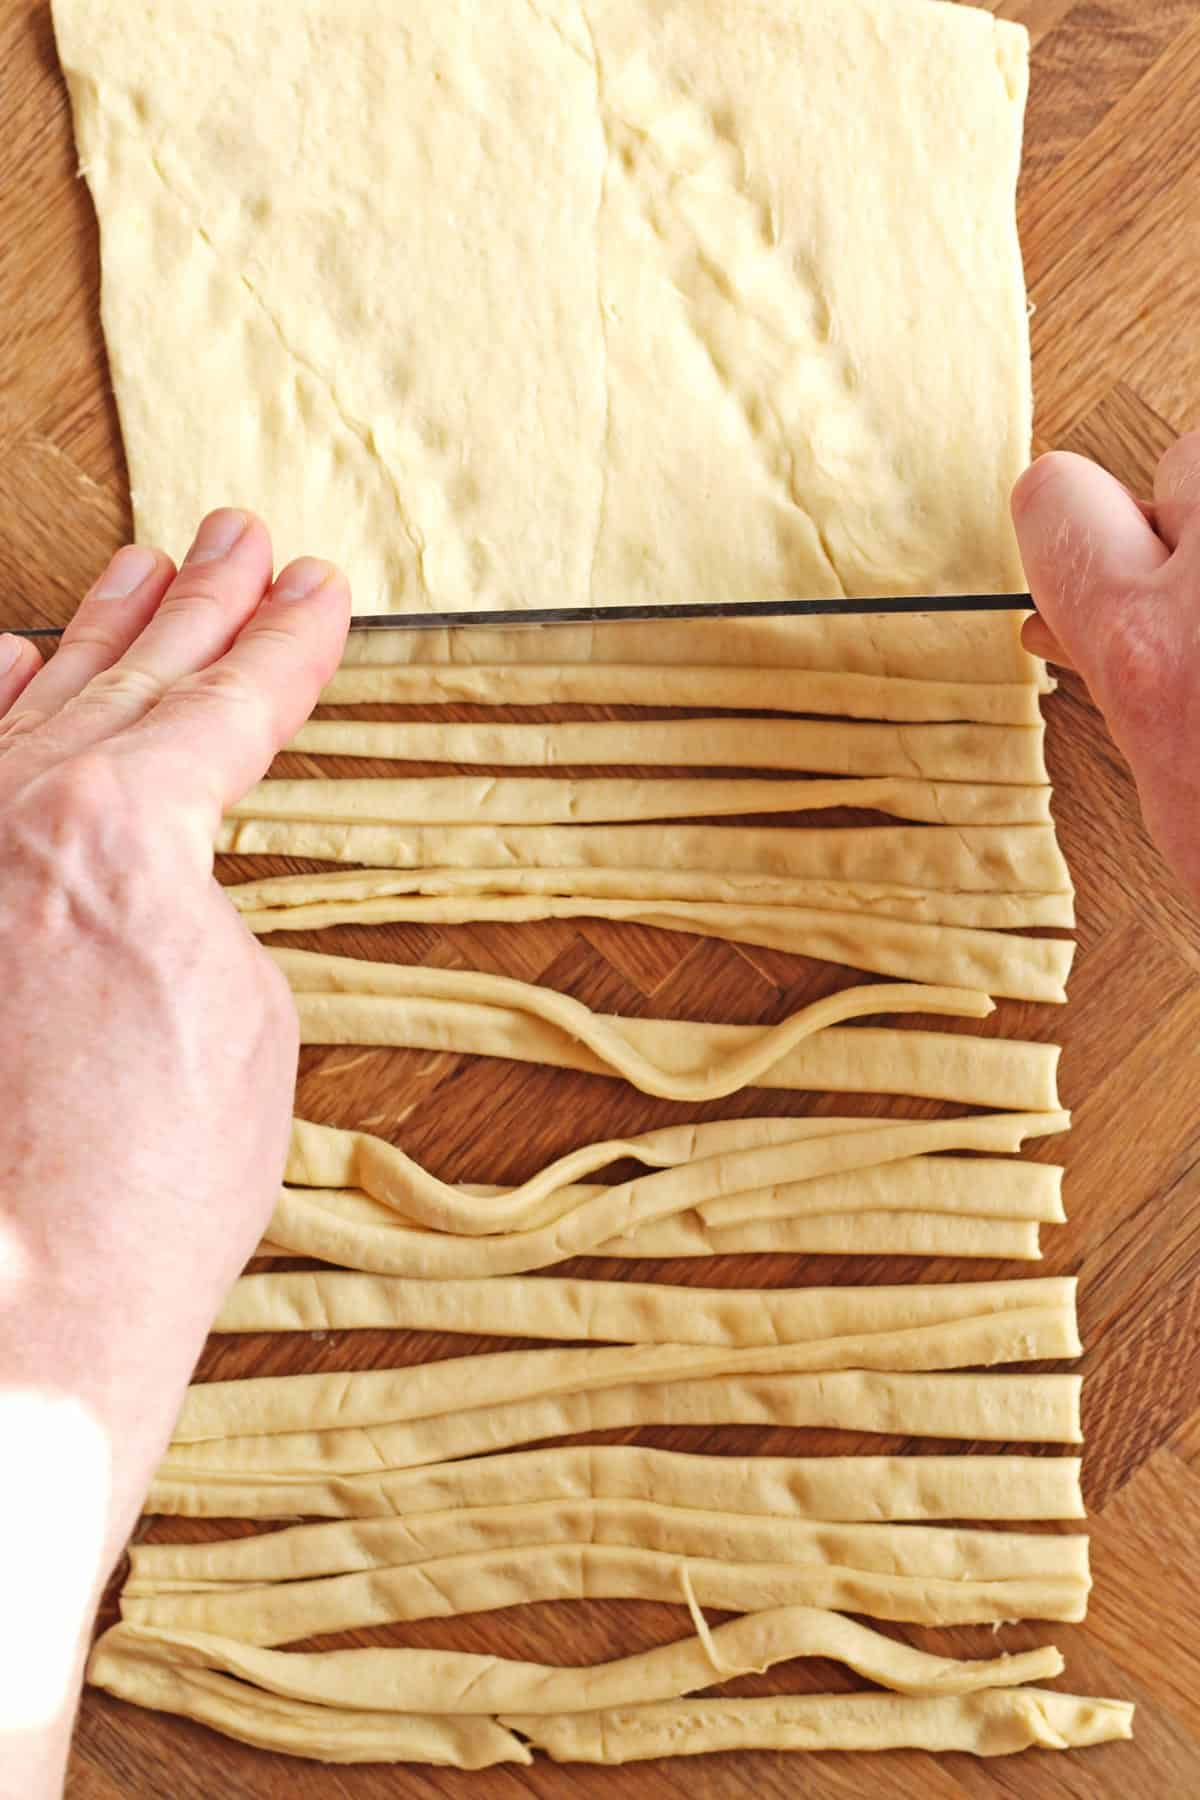 Strips of crescent dough cut with a knife